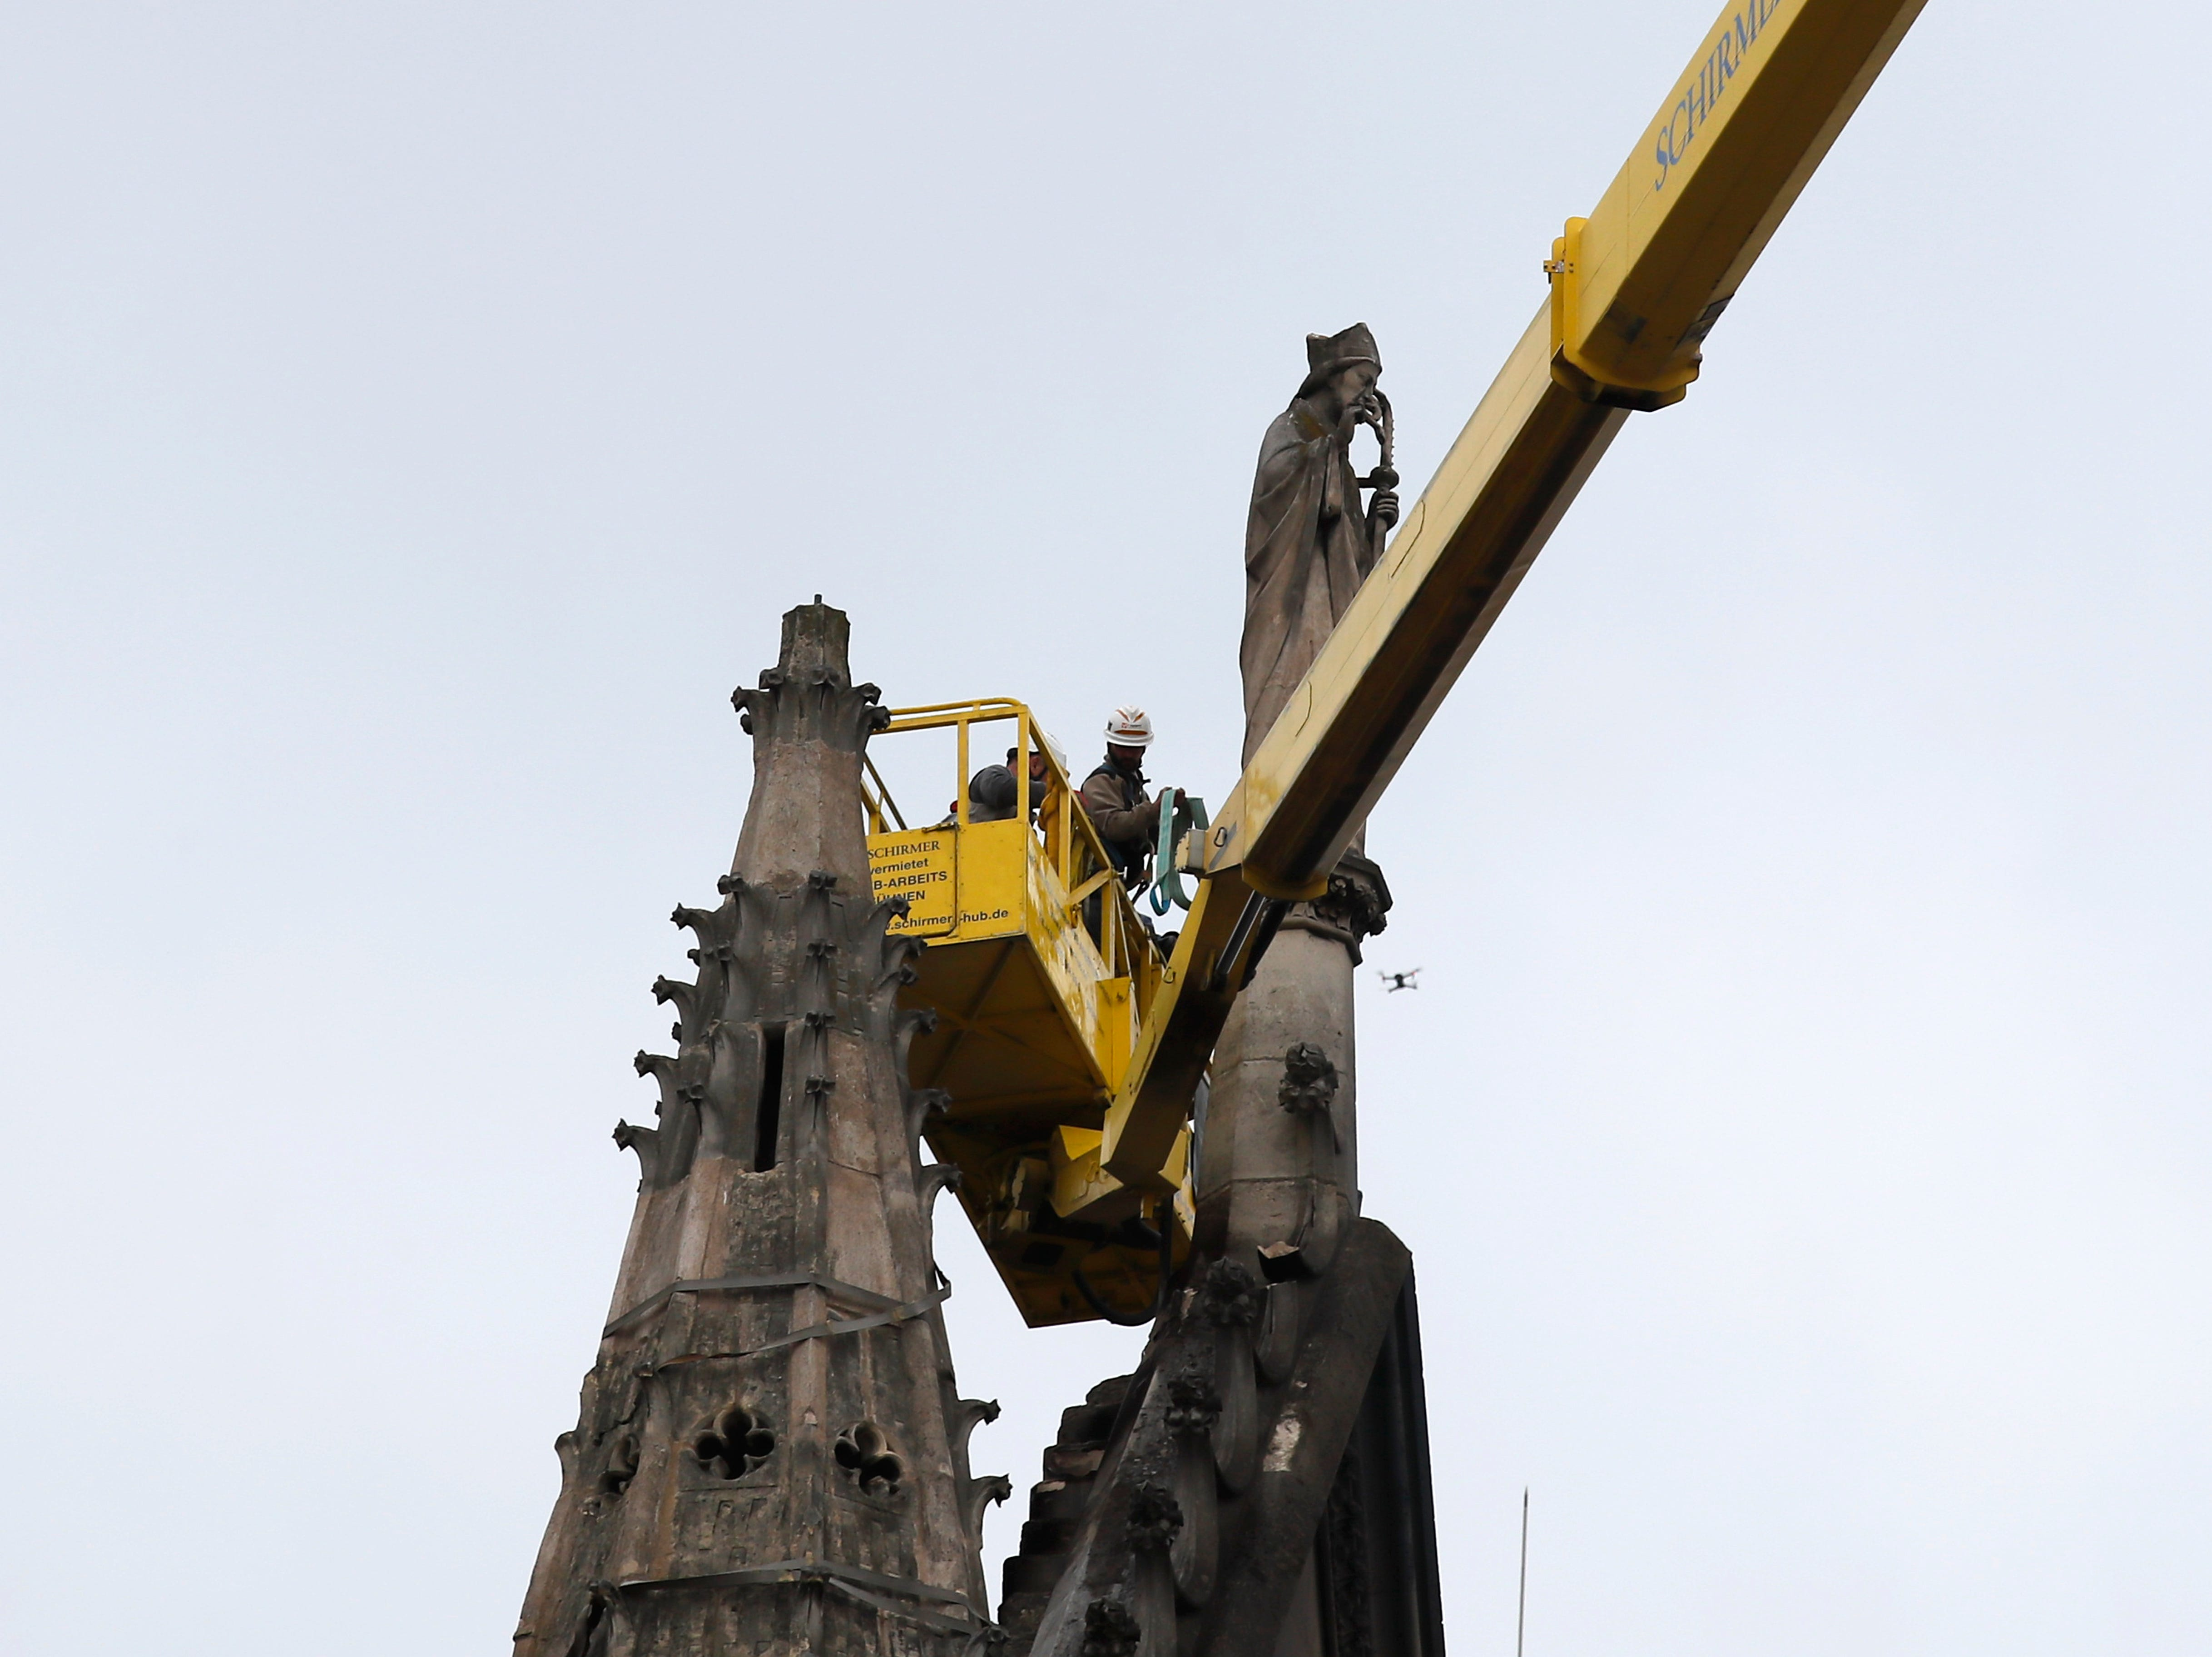 Workers stand atop a crane at Notre Dame cathedral Tuesday April 16, 2019 in Paris. Firefighters declared success Tuesday in a more than 12-hour battle to extinguish an inferno engulfing Paris' iconic Notre Dame cathedral that claimed its spire and roof, but spared its bell towers. (AP Photo/Francois Mori)